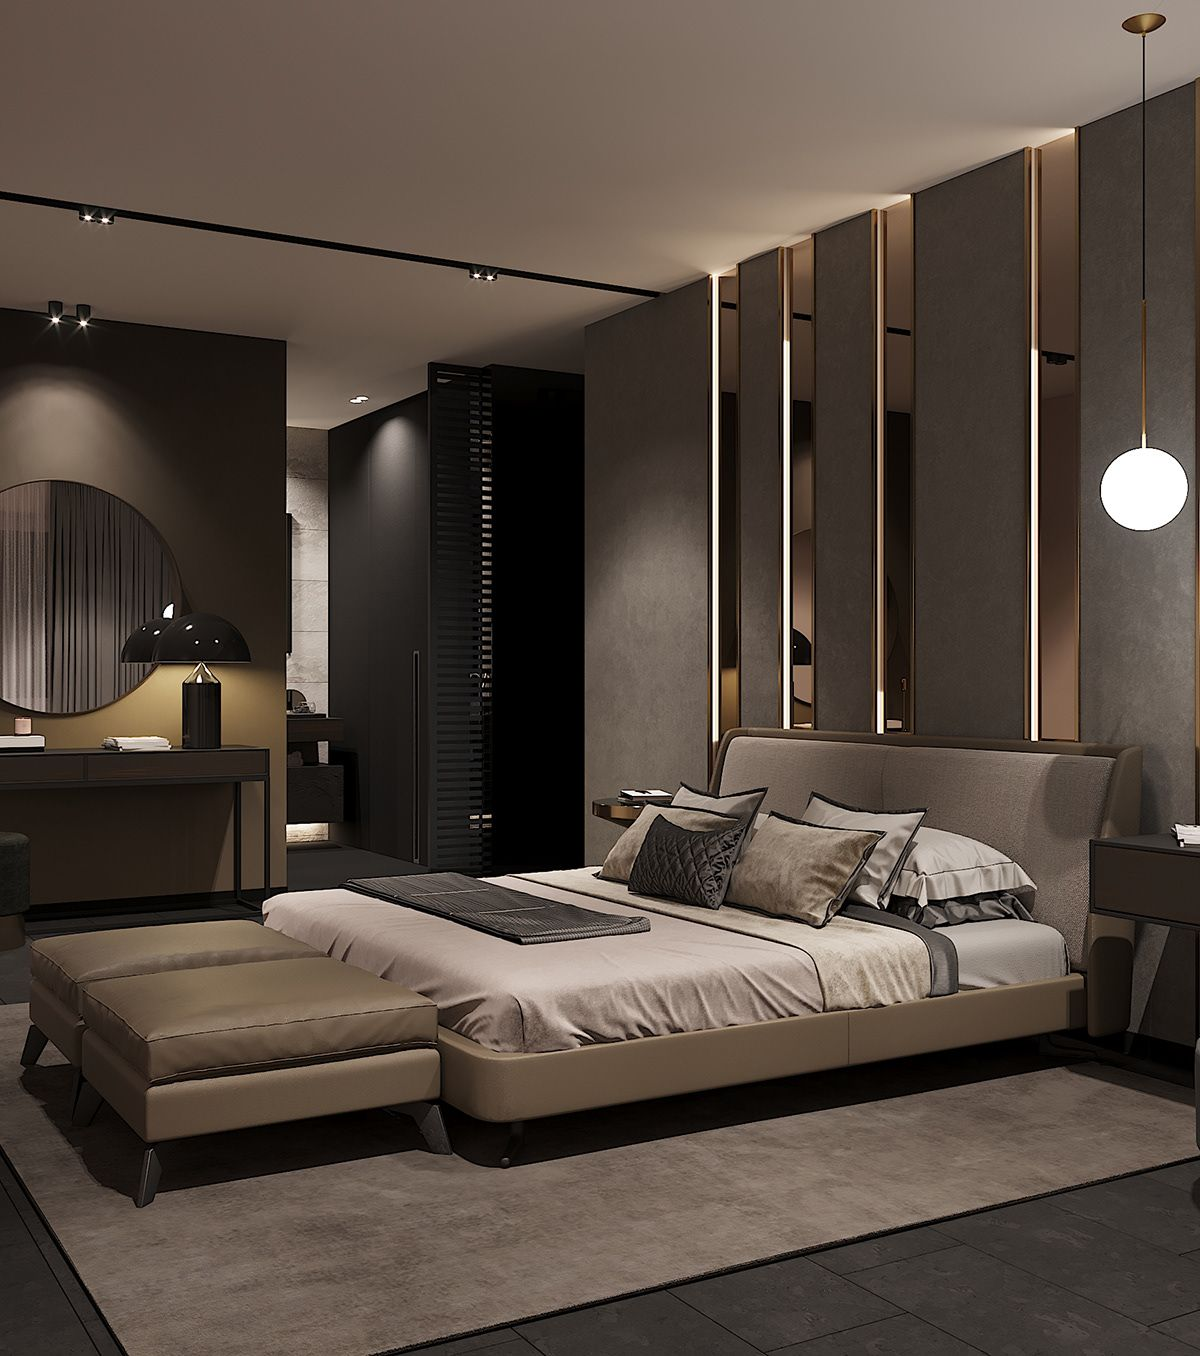 Modern Beautiful Bedrooms Interior Decoration Designs: Https://www.behance.net/gallery/72805713/Bedroom-in